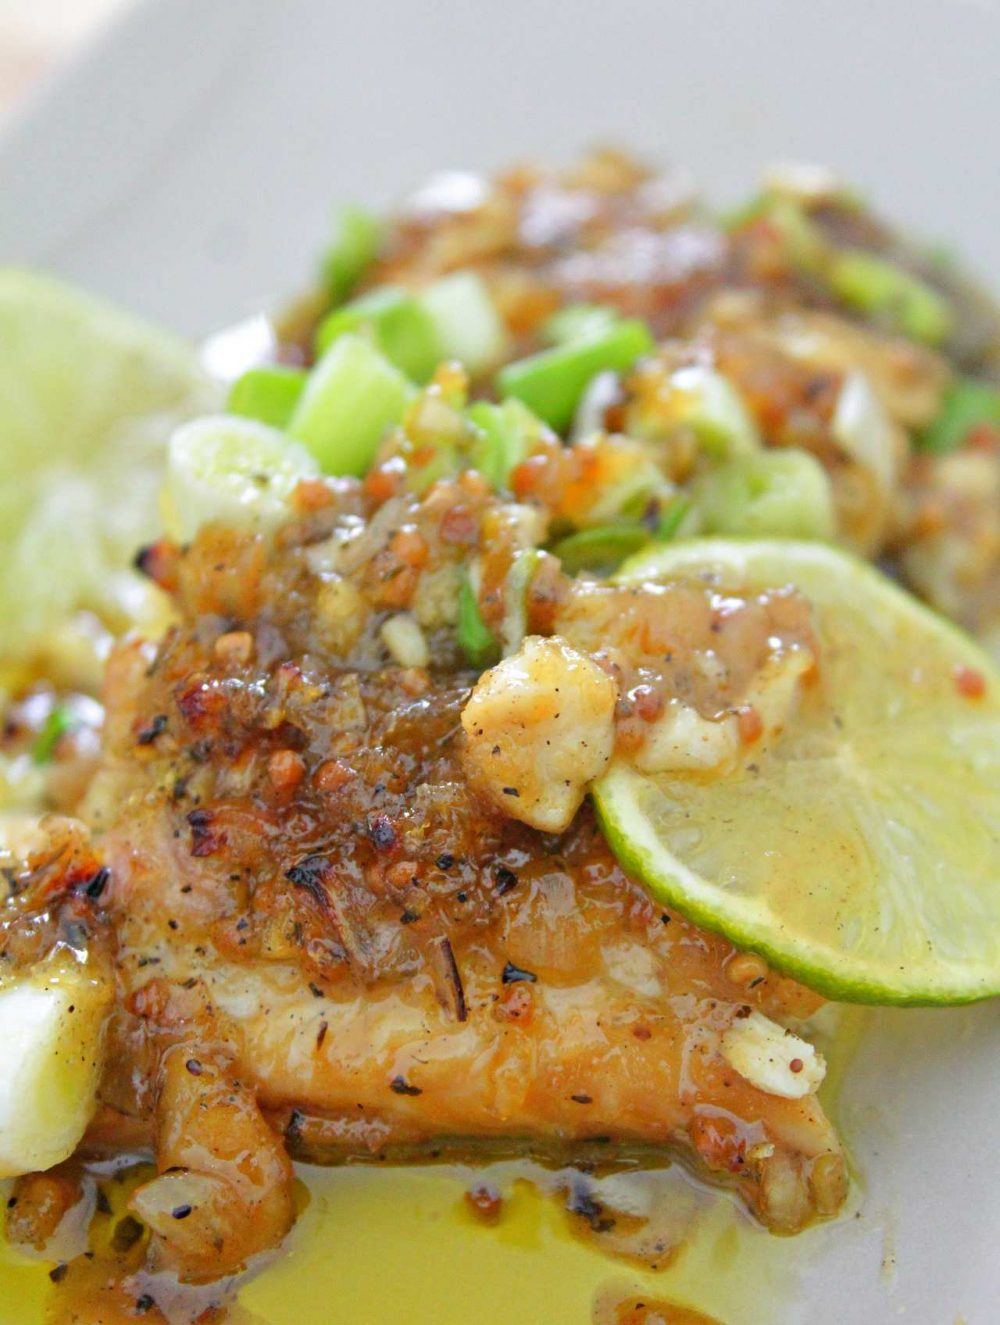 Baked fish in honey mustard sauce for fish sprinkled with green onions and served o a white plate with slices of lime